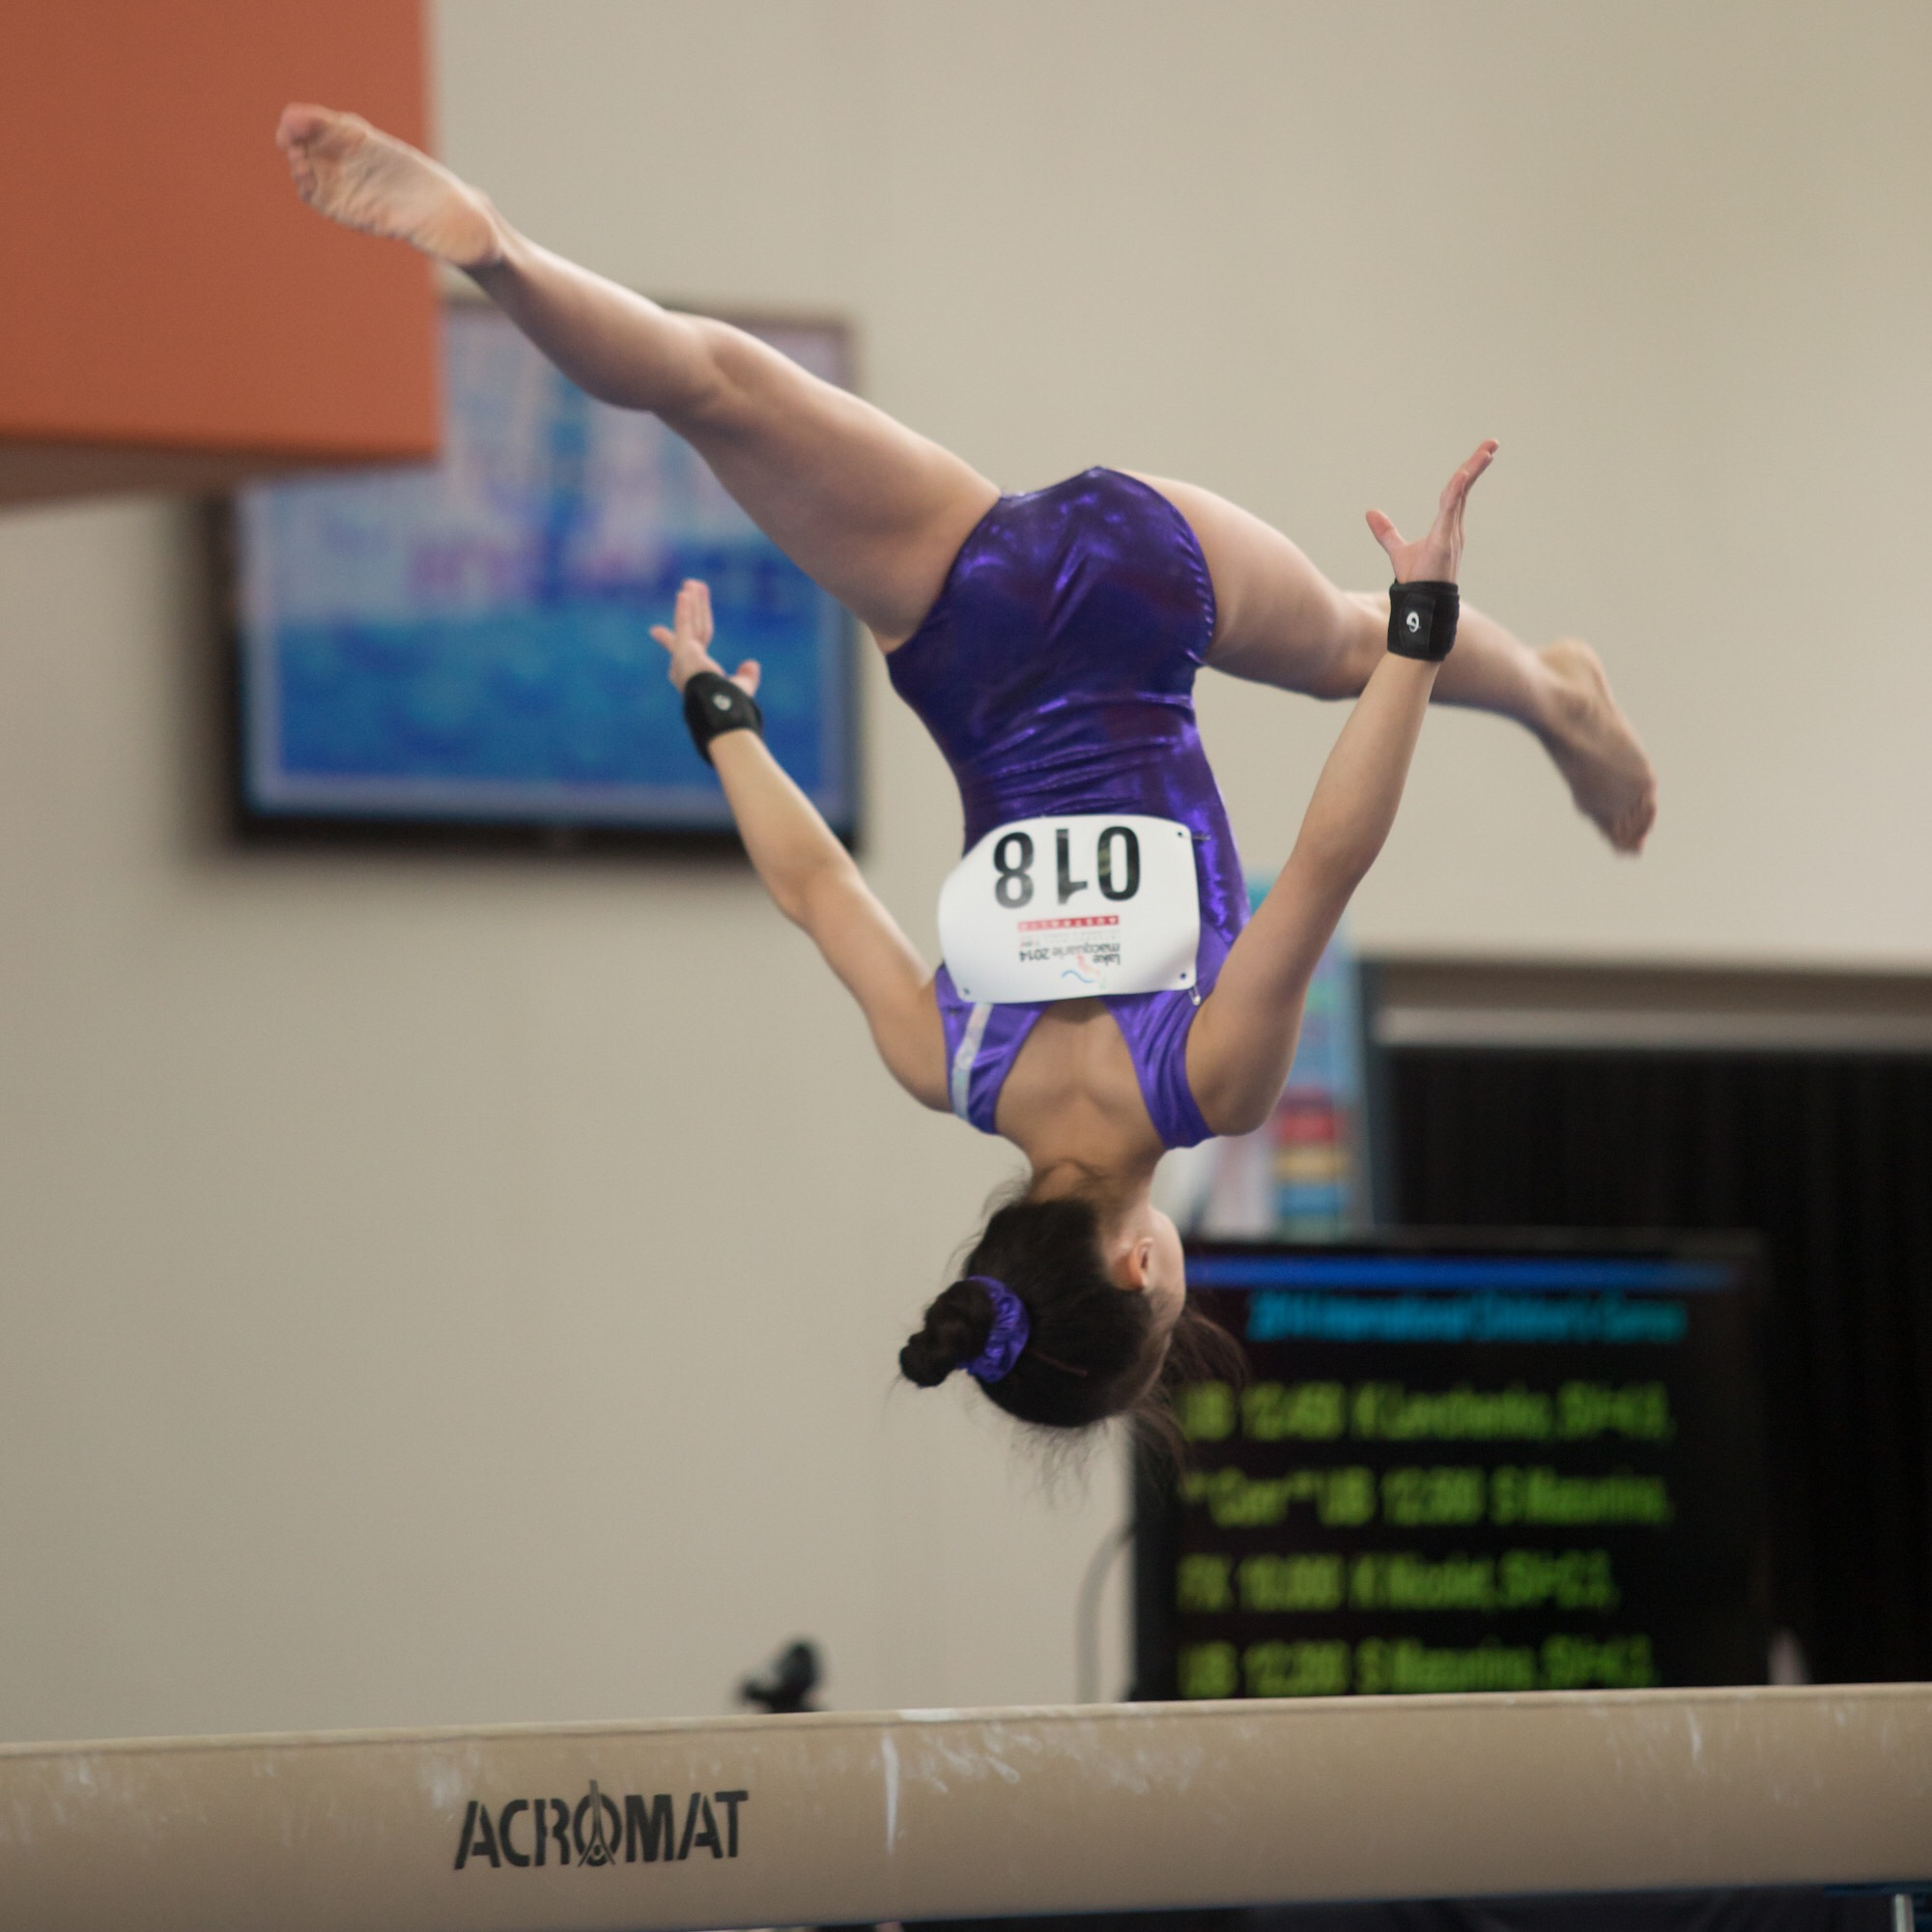 Level 9 Beam - Back Layout Step-out